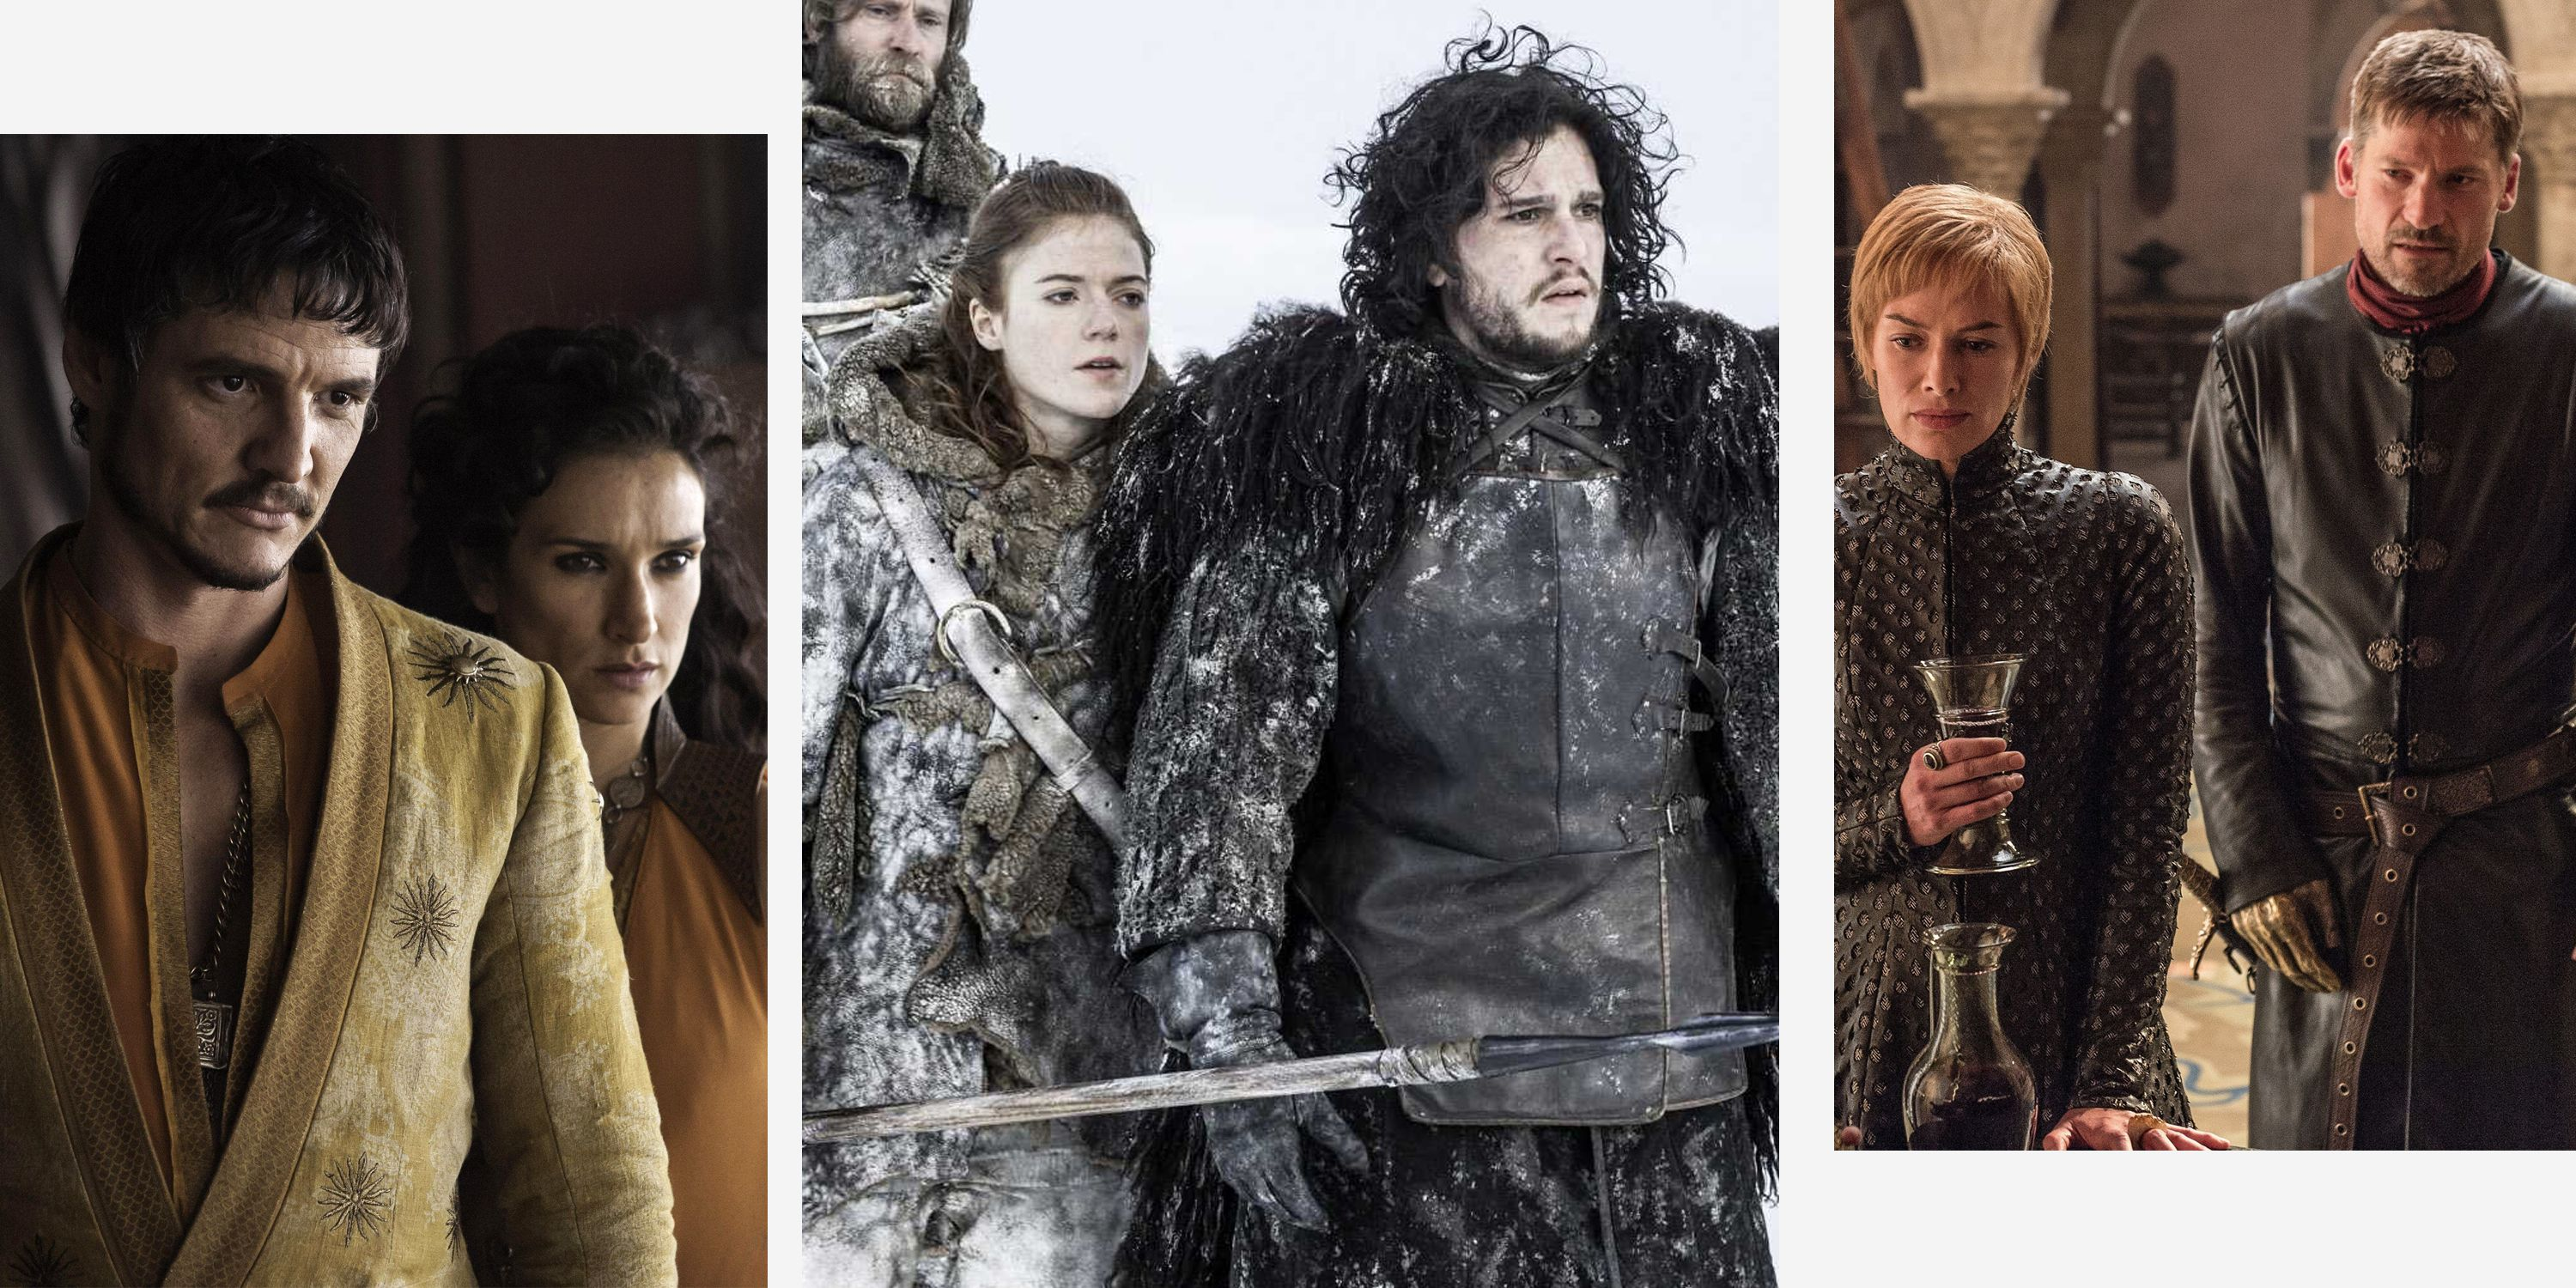 28 Best & Worst 'Game of Thrones' Couples - GoT Relationships We'll